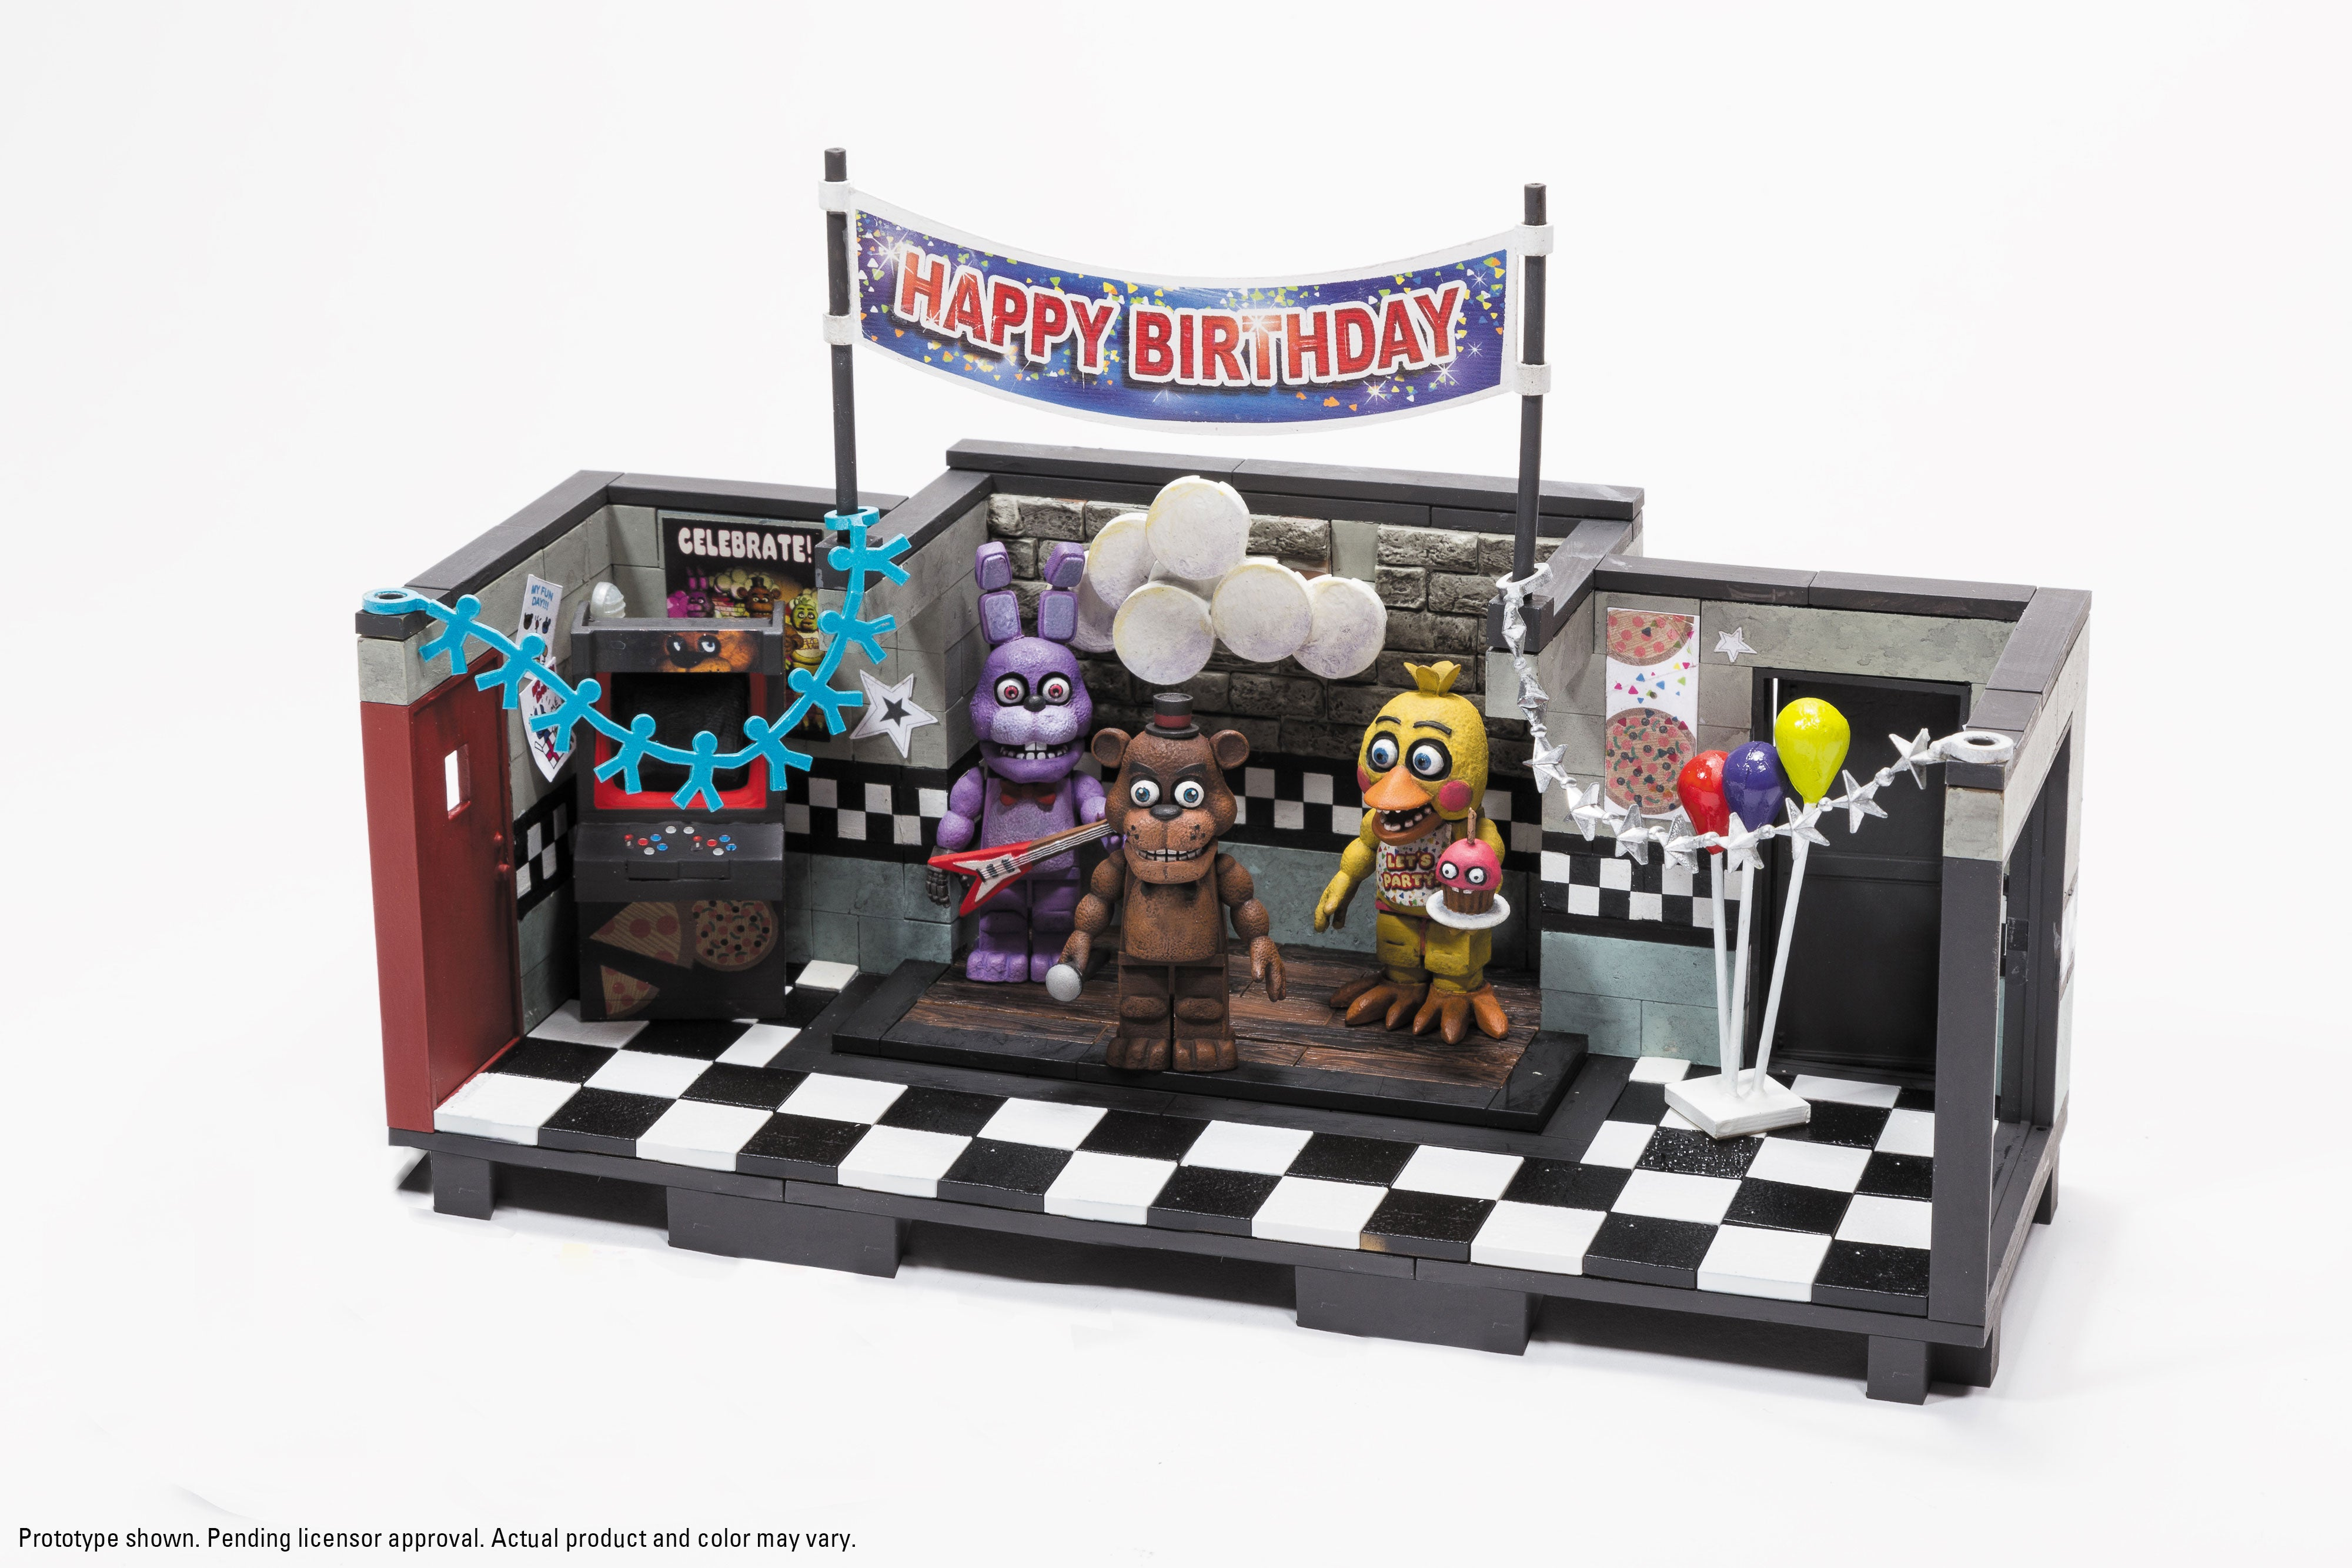 Five Nights At Freddy's Building Sets Coming From Exactly The Right Toy Company